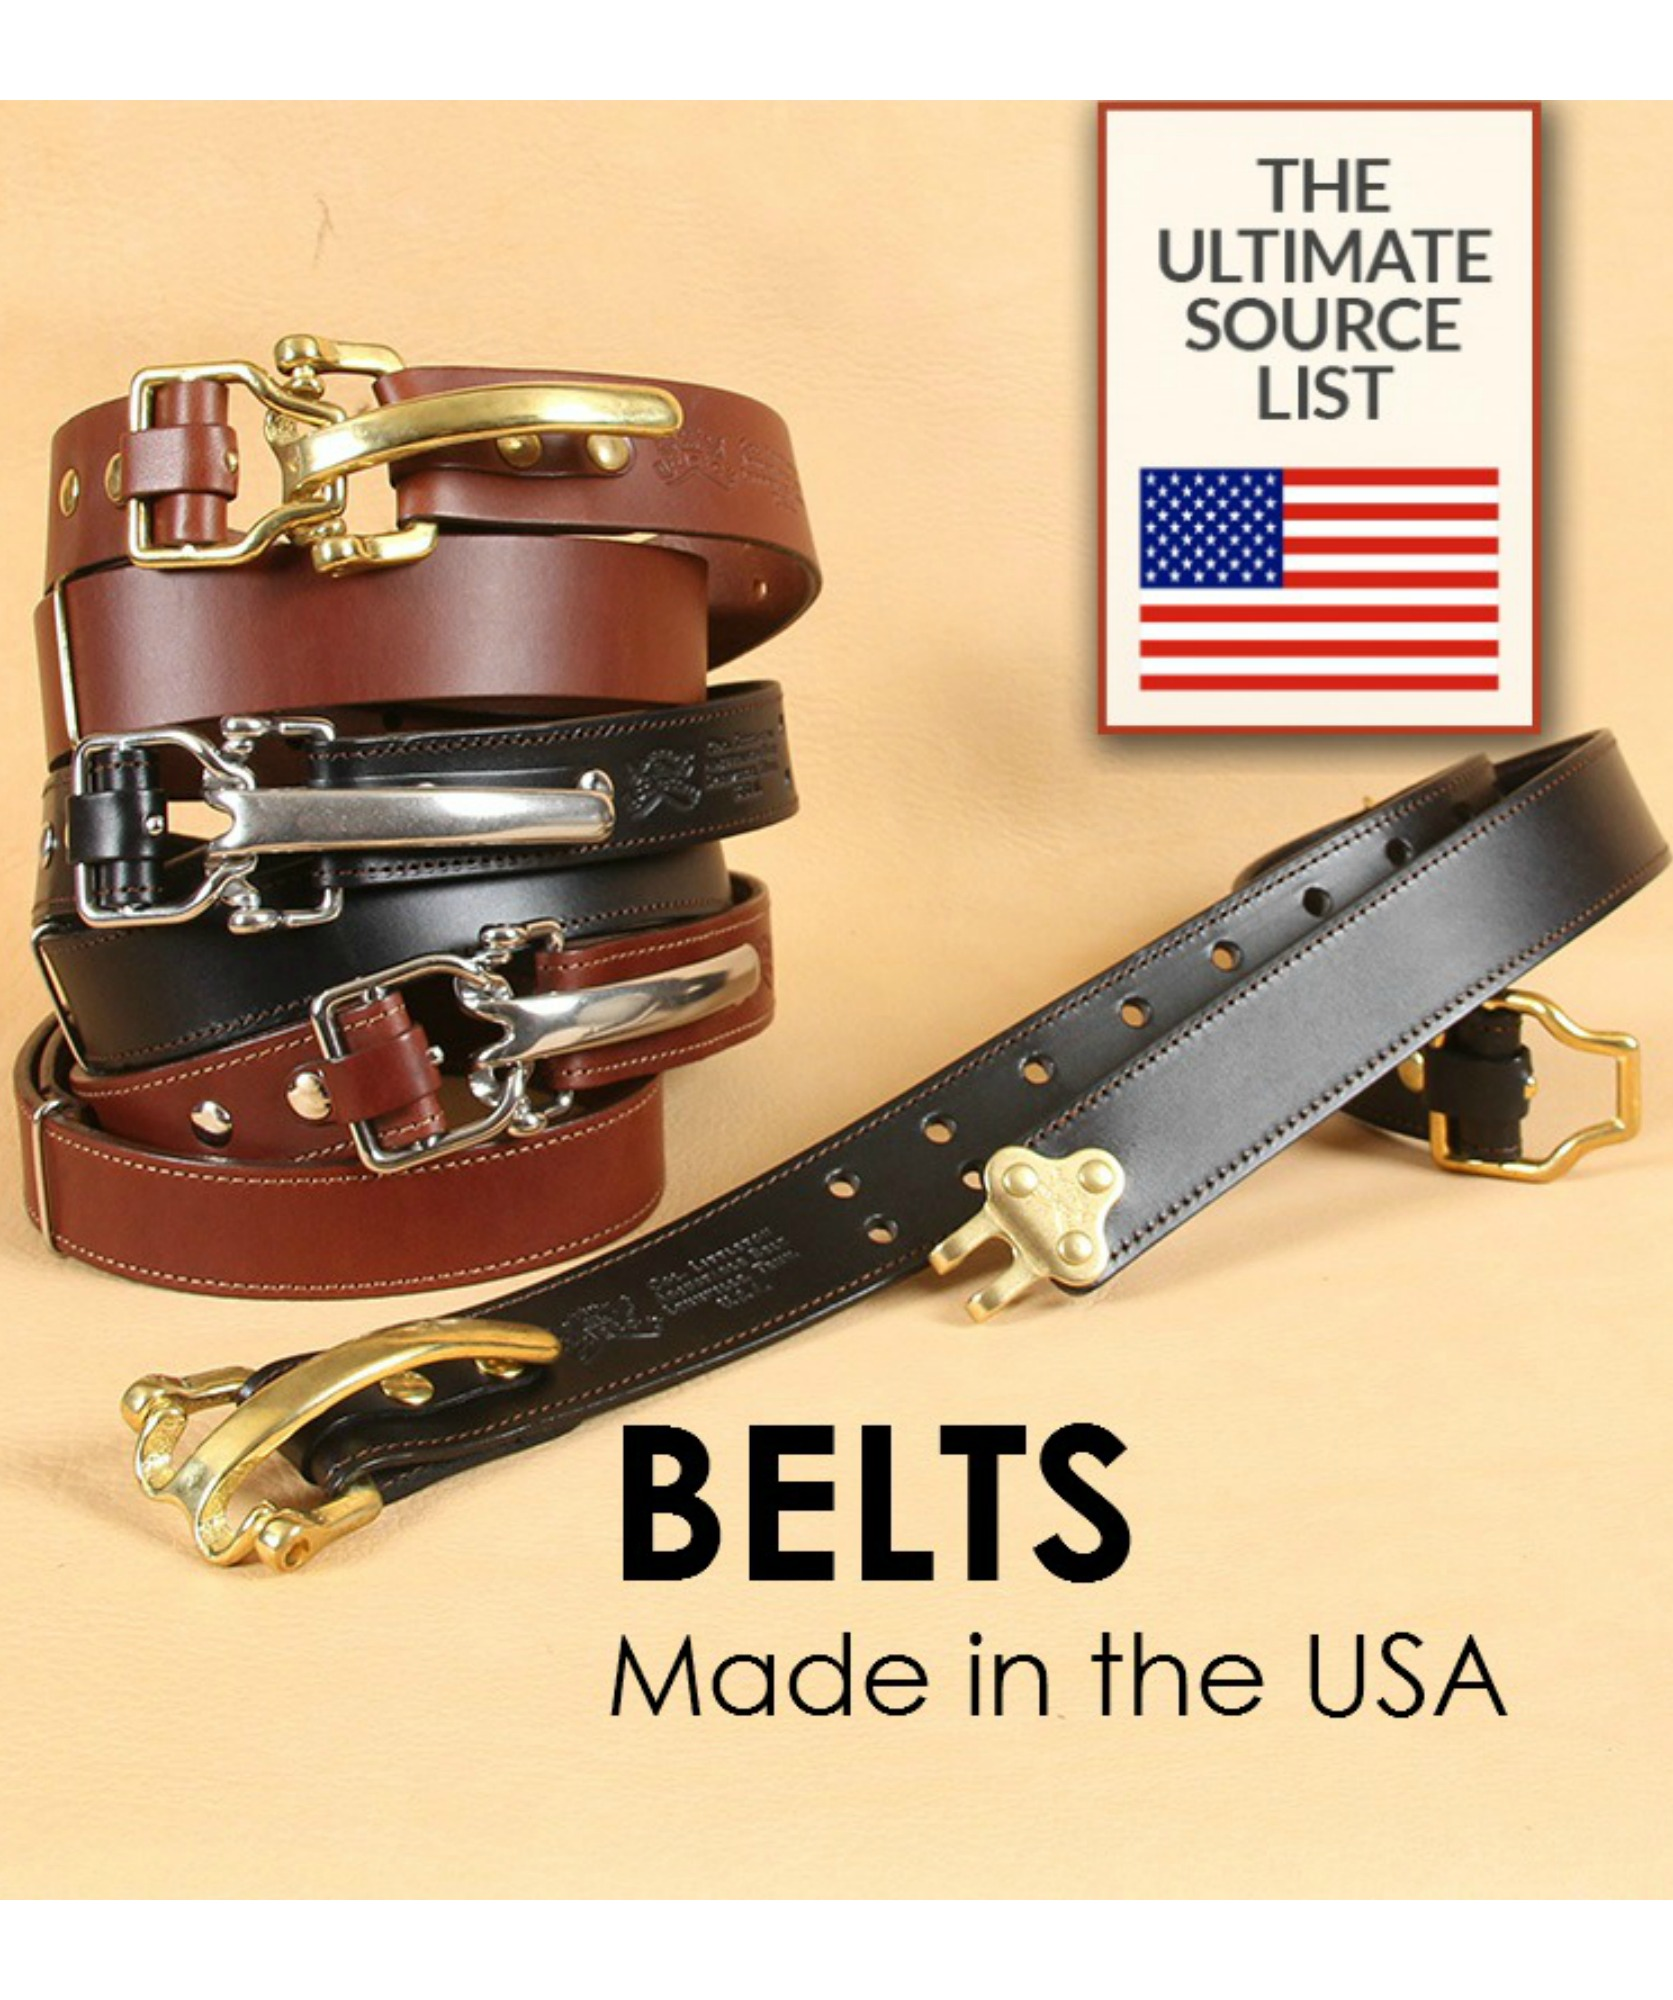 Buy belts made in the USA